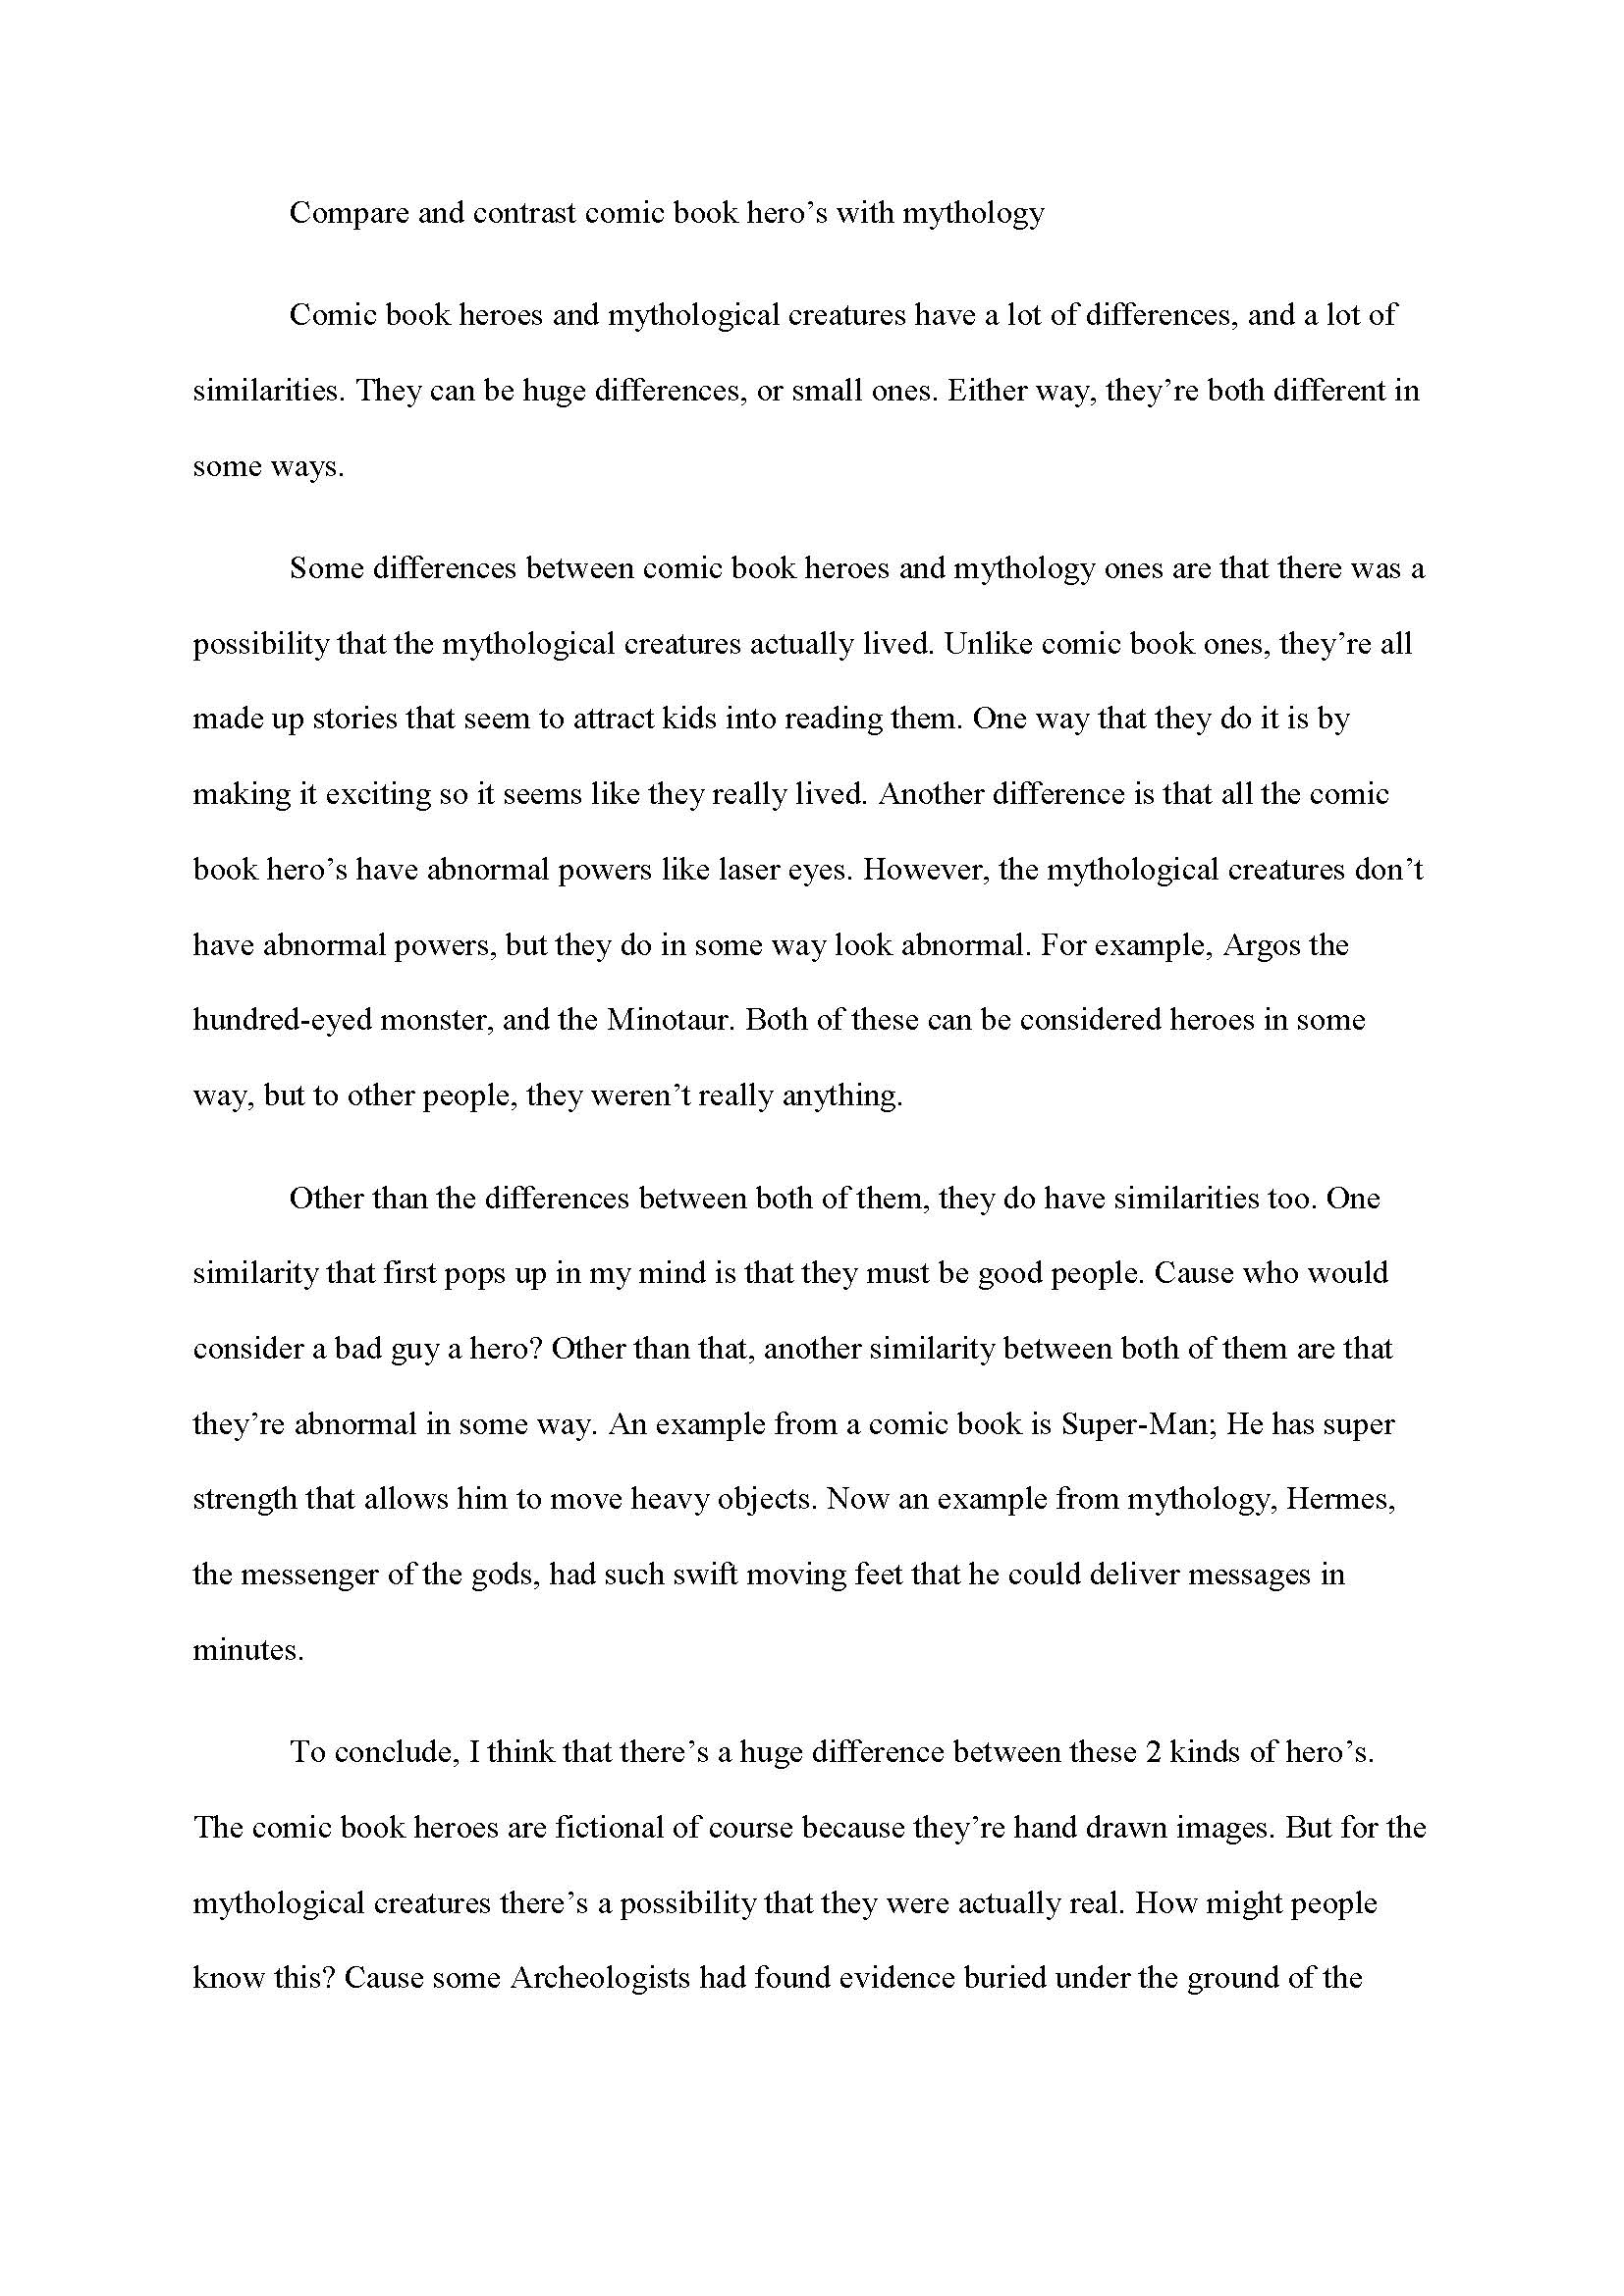 006 Compare And Contrast Essay Conclusion Example Staggering High School College Introduction Vs. Full